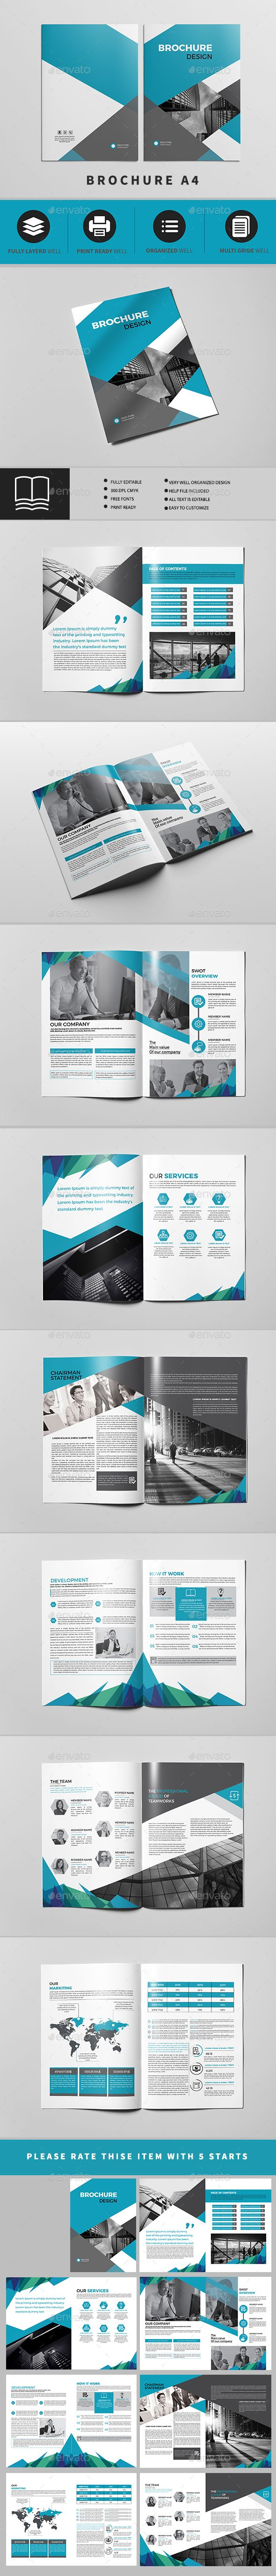 #Company Profile A4 16 Pages - #Brochures Print #Templates Download here: https://graphicriver.net/item/company-profile-a4-16-pages/19496146?ref=alena994